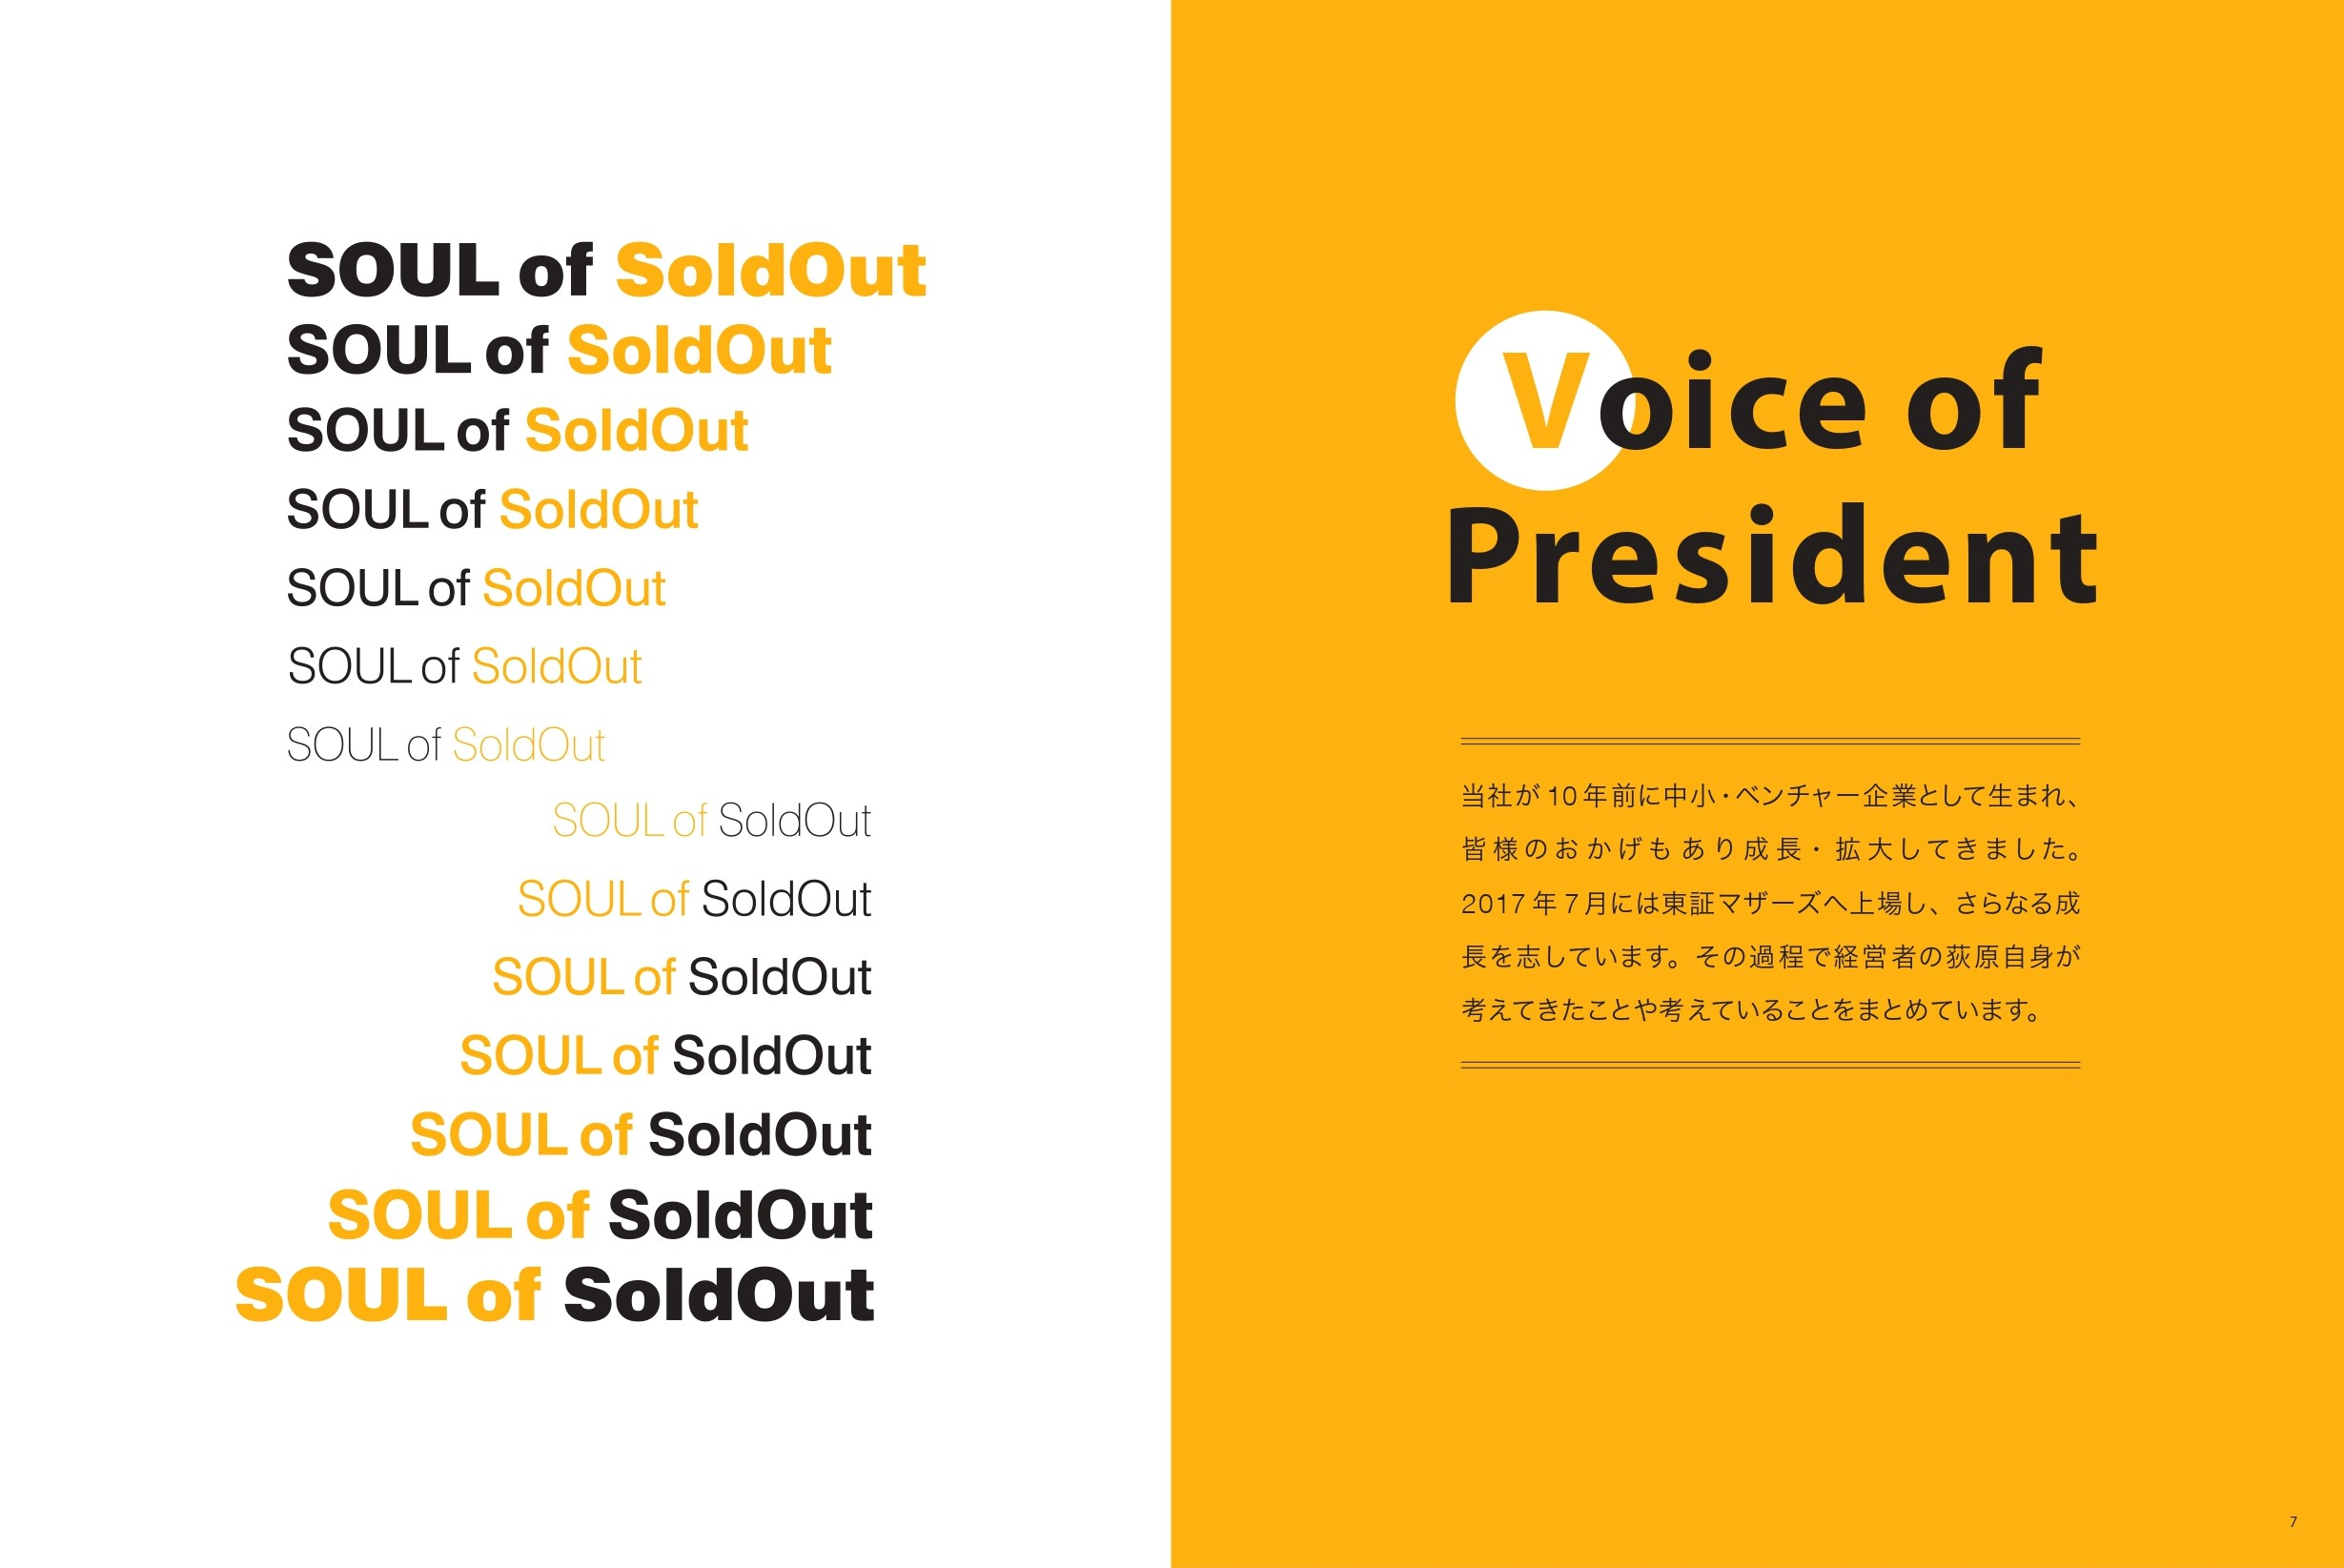 SOUL of SoldOut